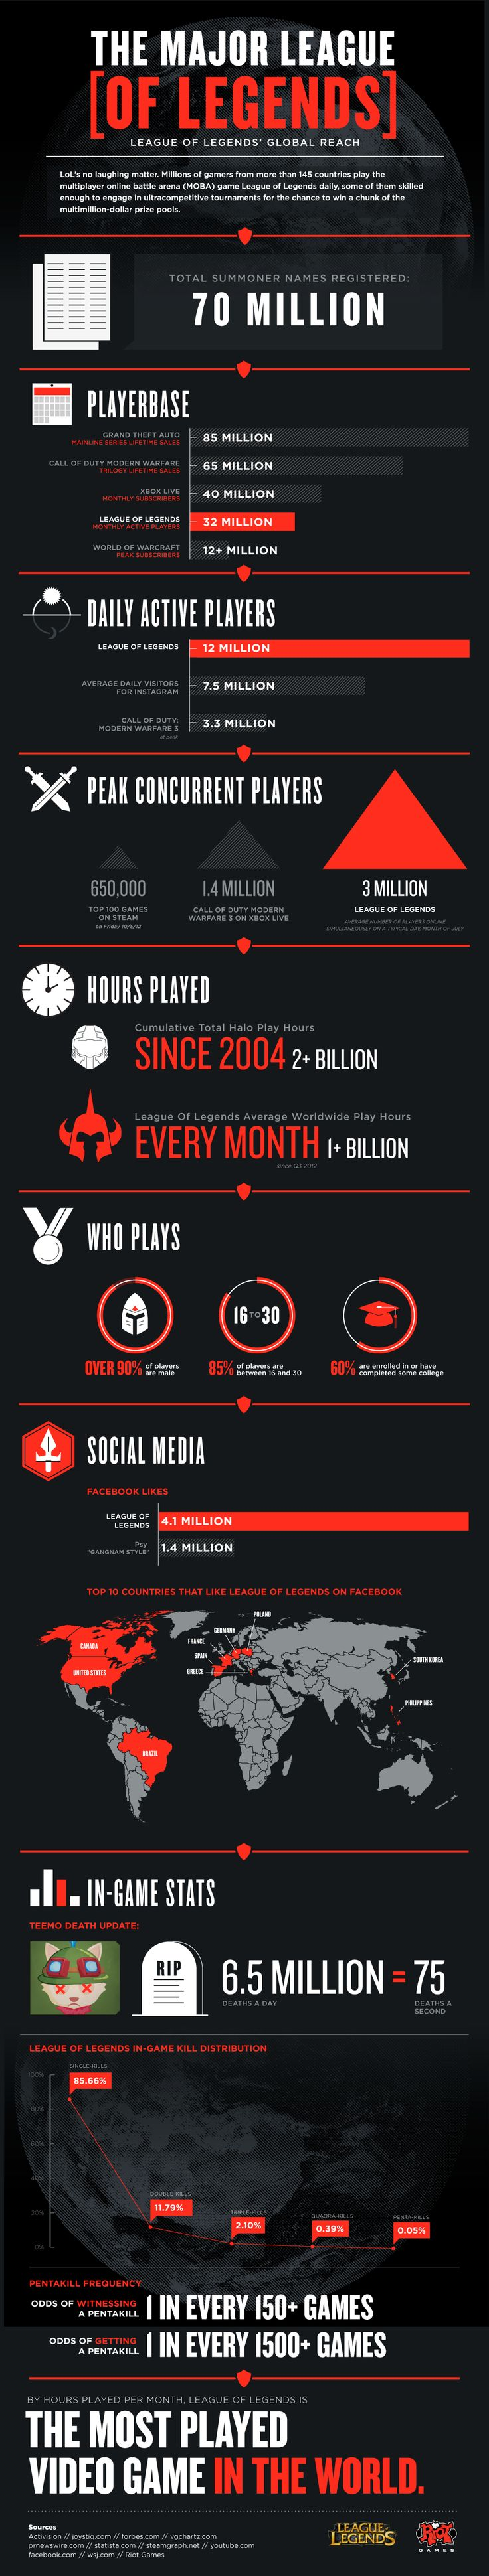 #Interesting                             70 million users, 1+ billion hours every month: League of Legends is the world's most played video game